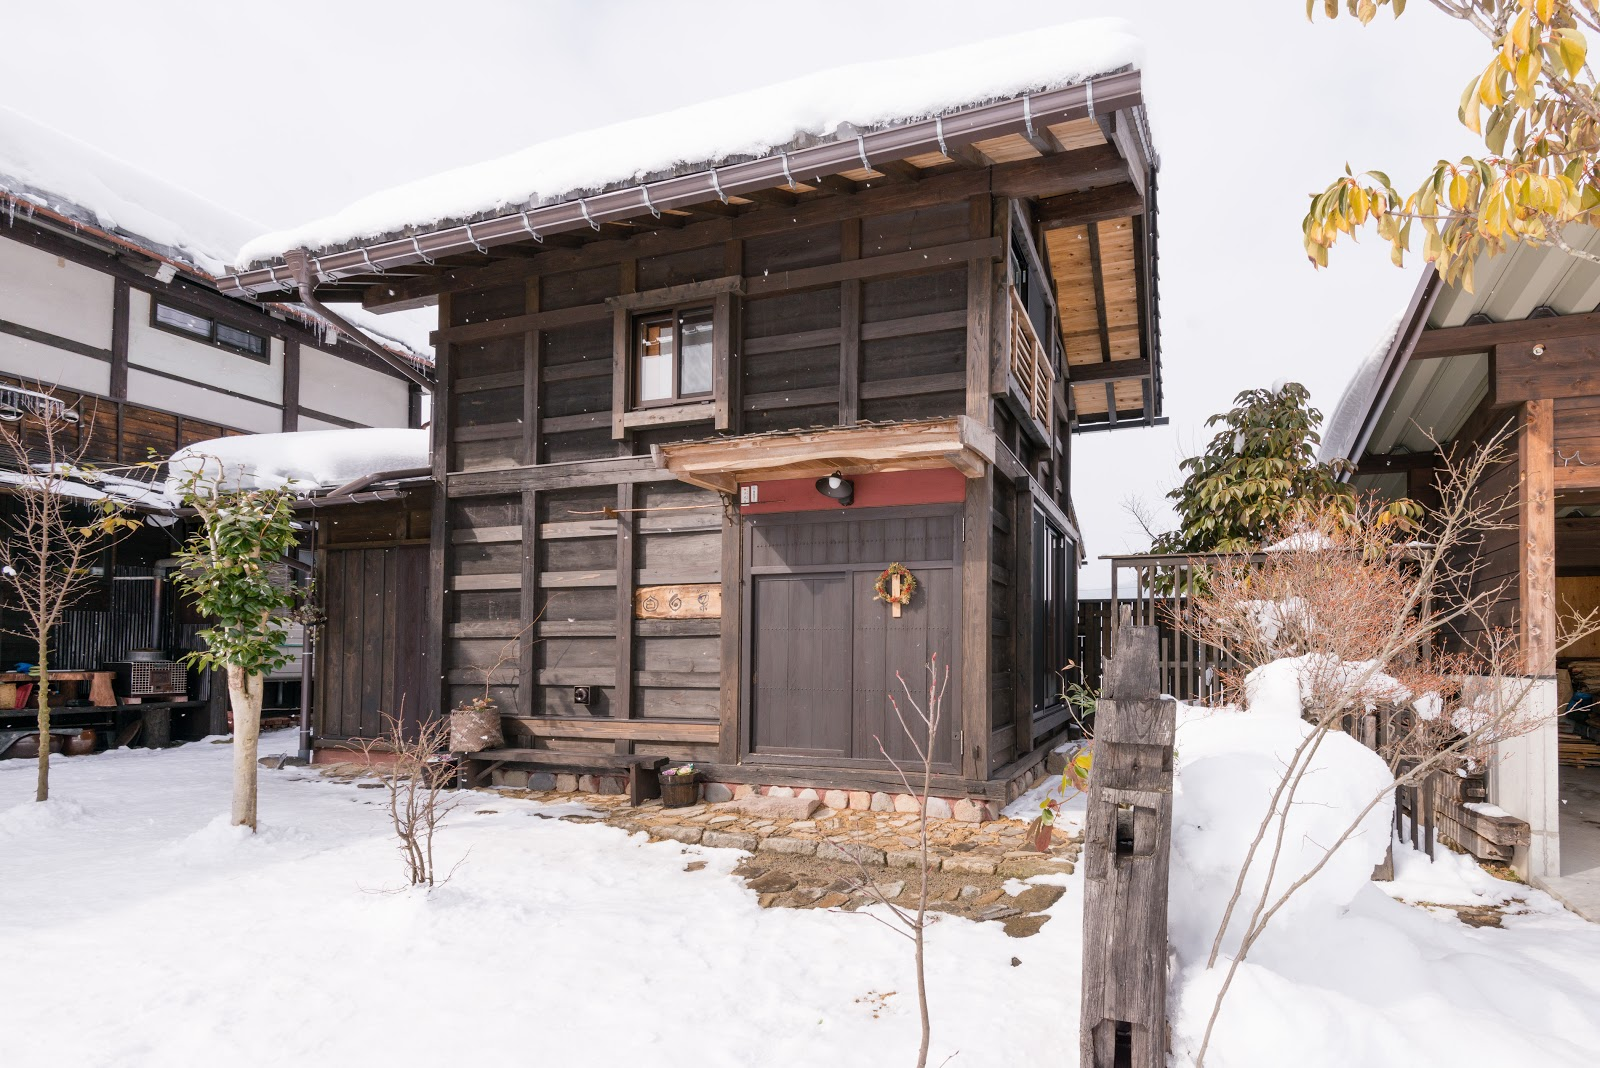 Japan Off the Beaten Path: 8 Stays for an Alternative Experience